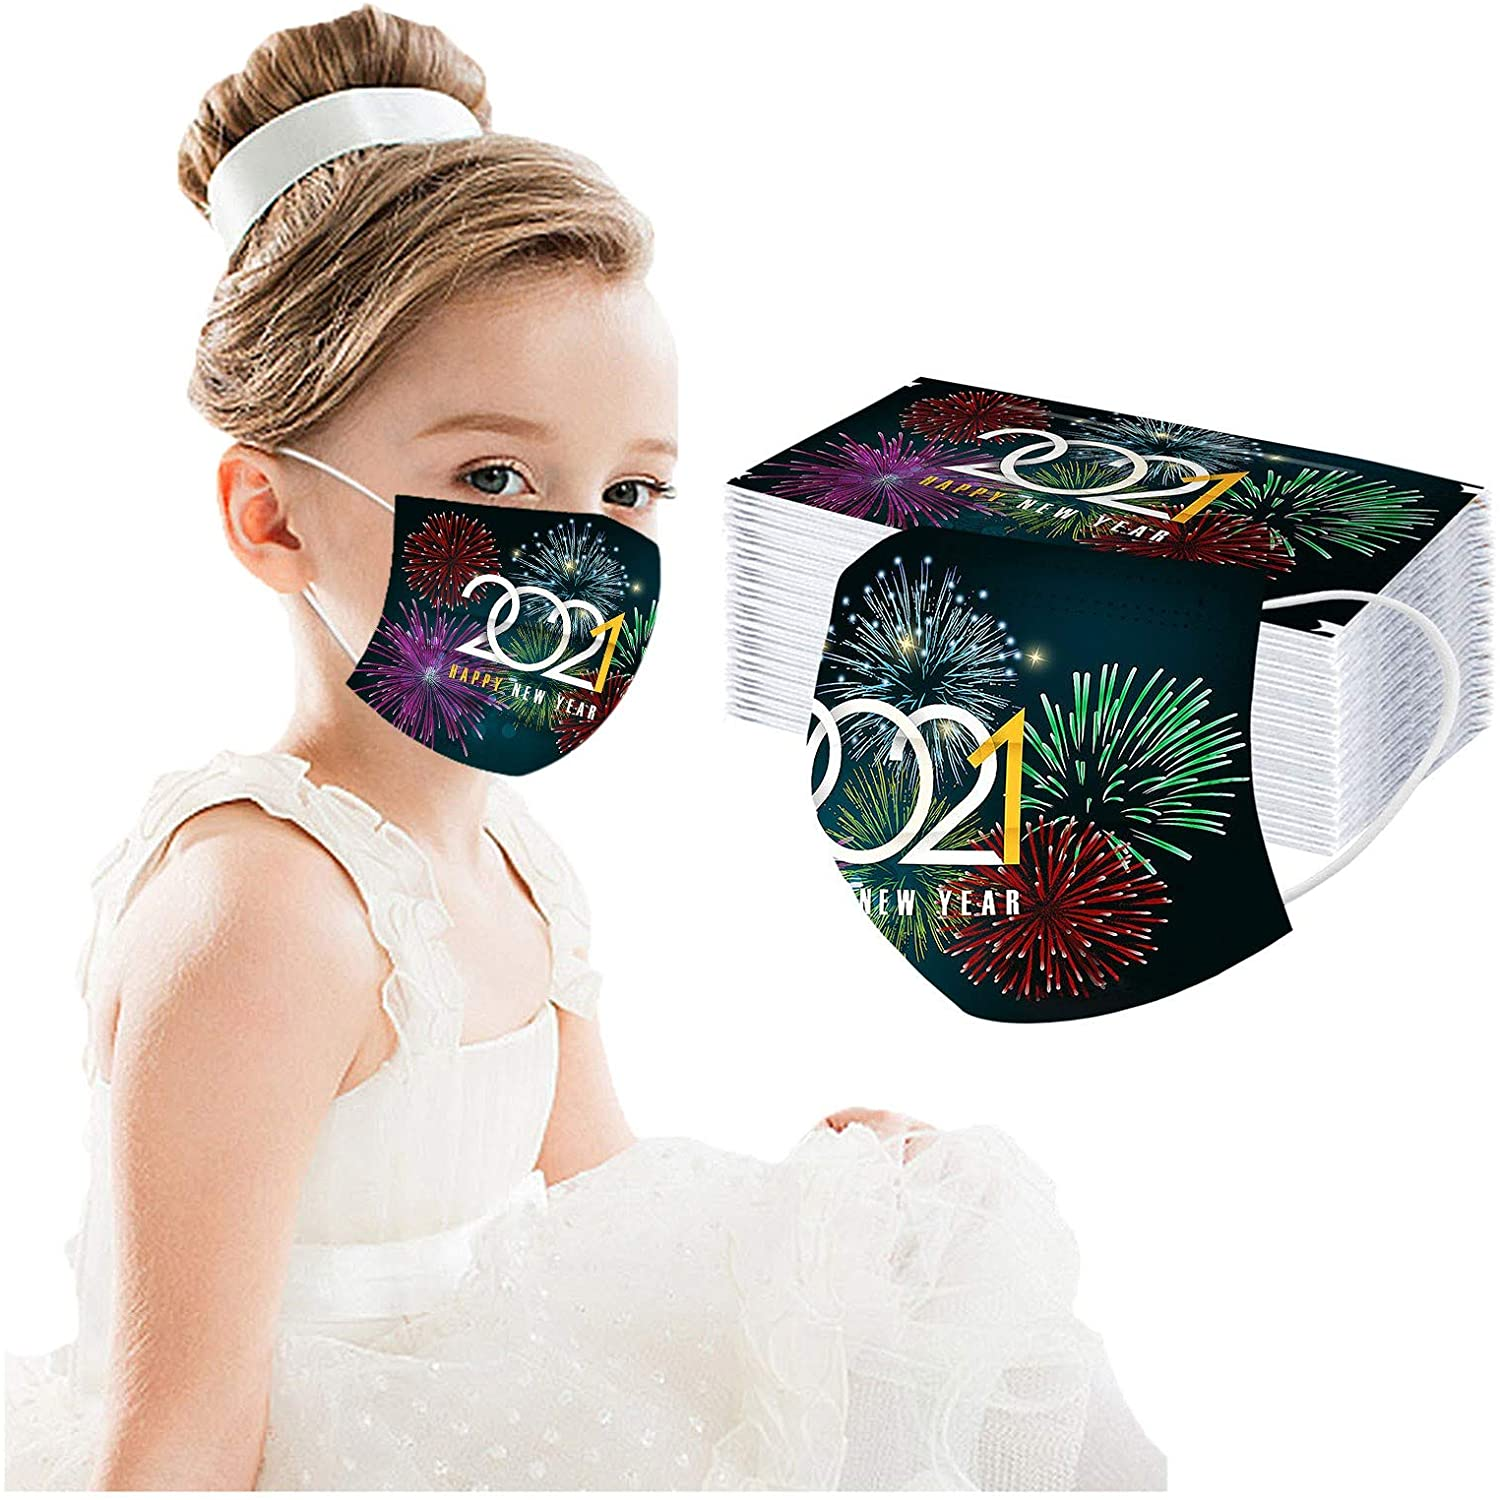 50 Pcs, Kids Christmas Disposable Fɑcѐ ṁɑѕḱѕ, Cute Novelty 2021 Happy New Year Pattern, 3 Layers Print Face ṁɑşḱ, Comfortable and Breathable, for Children